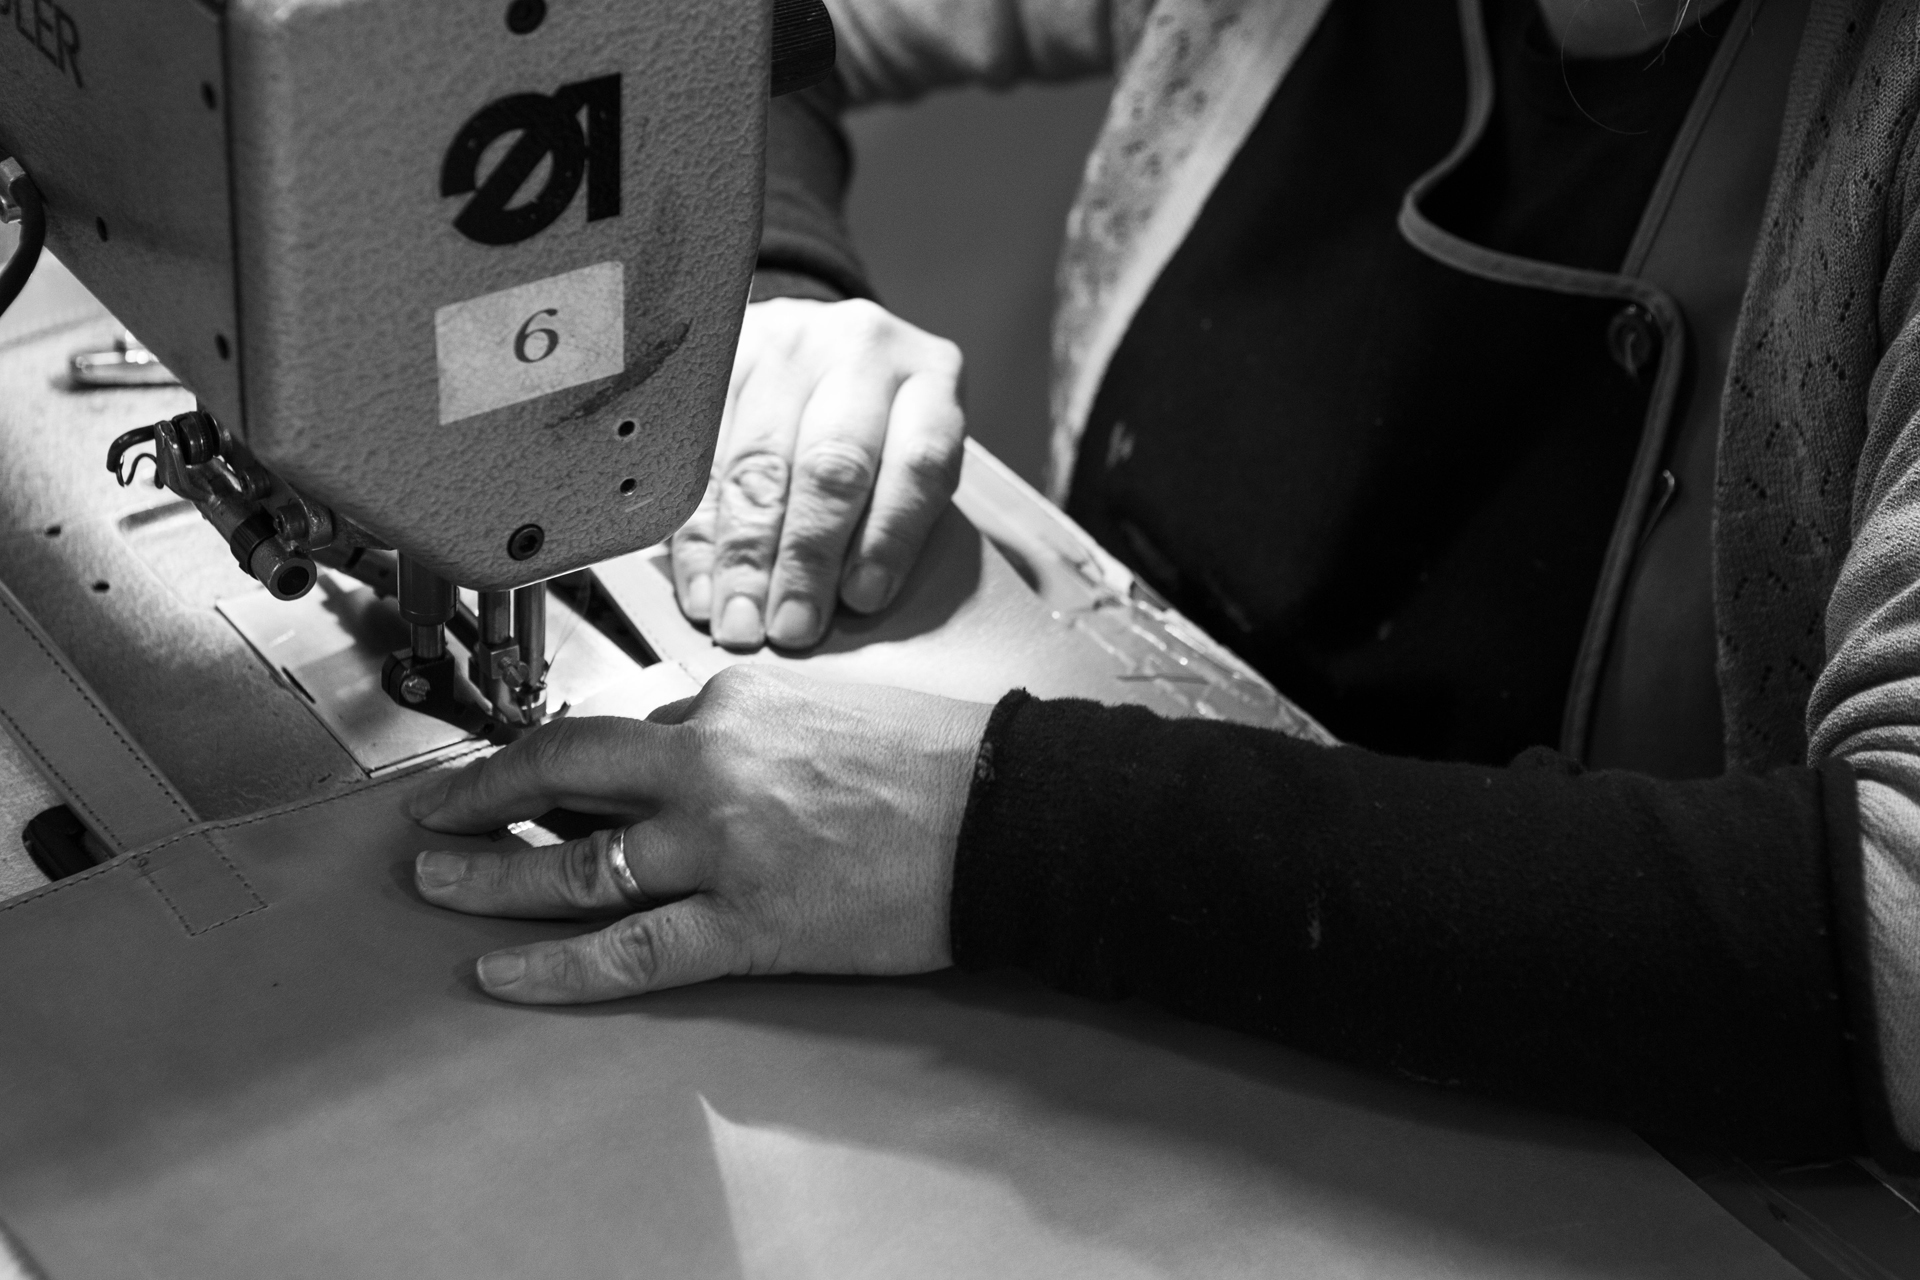 Our leather is cut by hand and assembled by specialized fine bag makers.